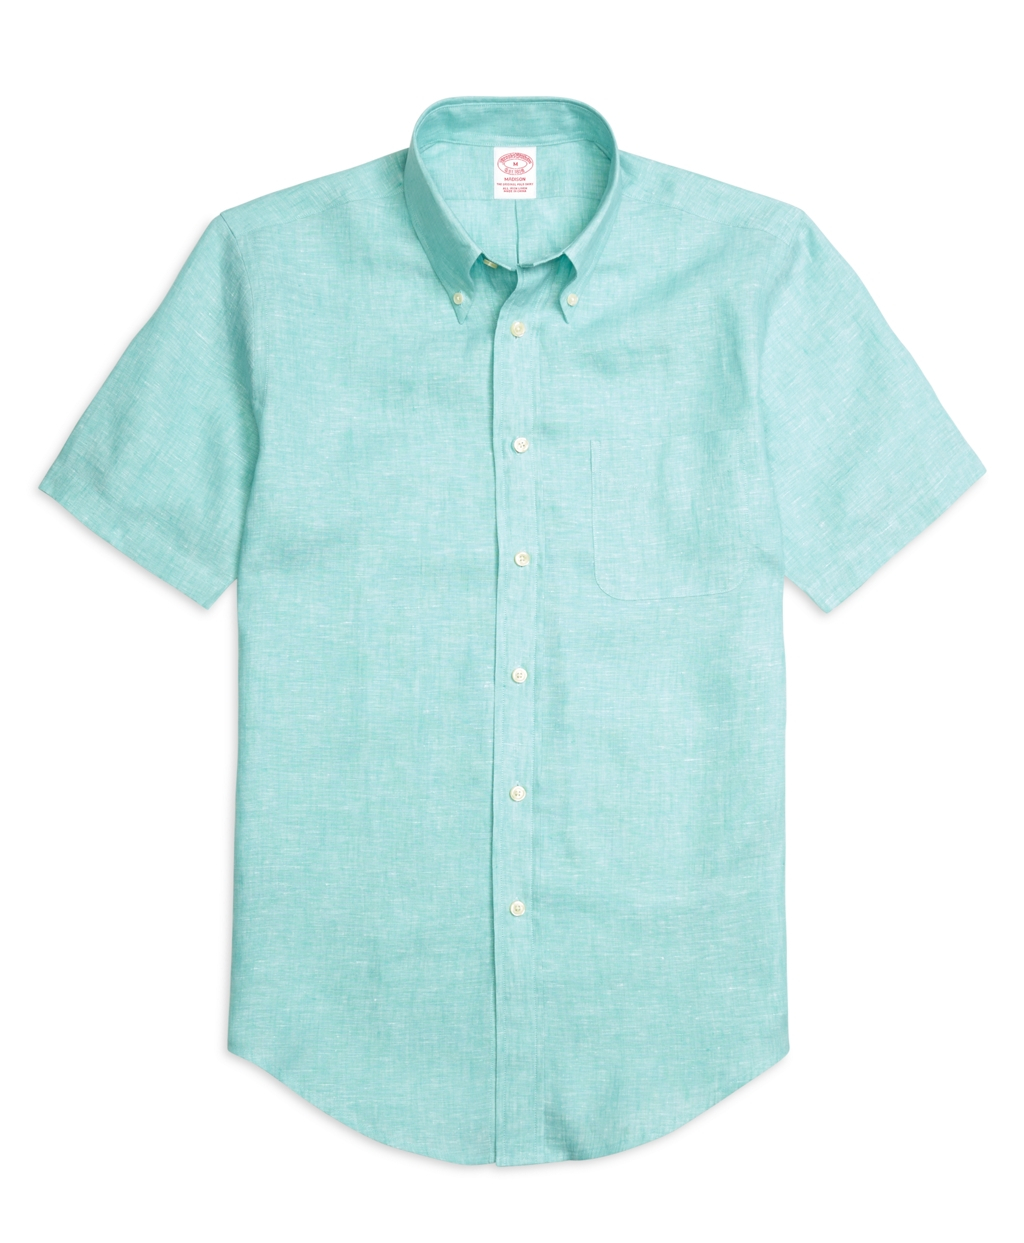 Brooks brothers teal madison fit linen short sleeve for Brooks brothers shirt size guide